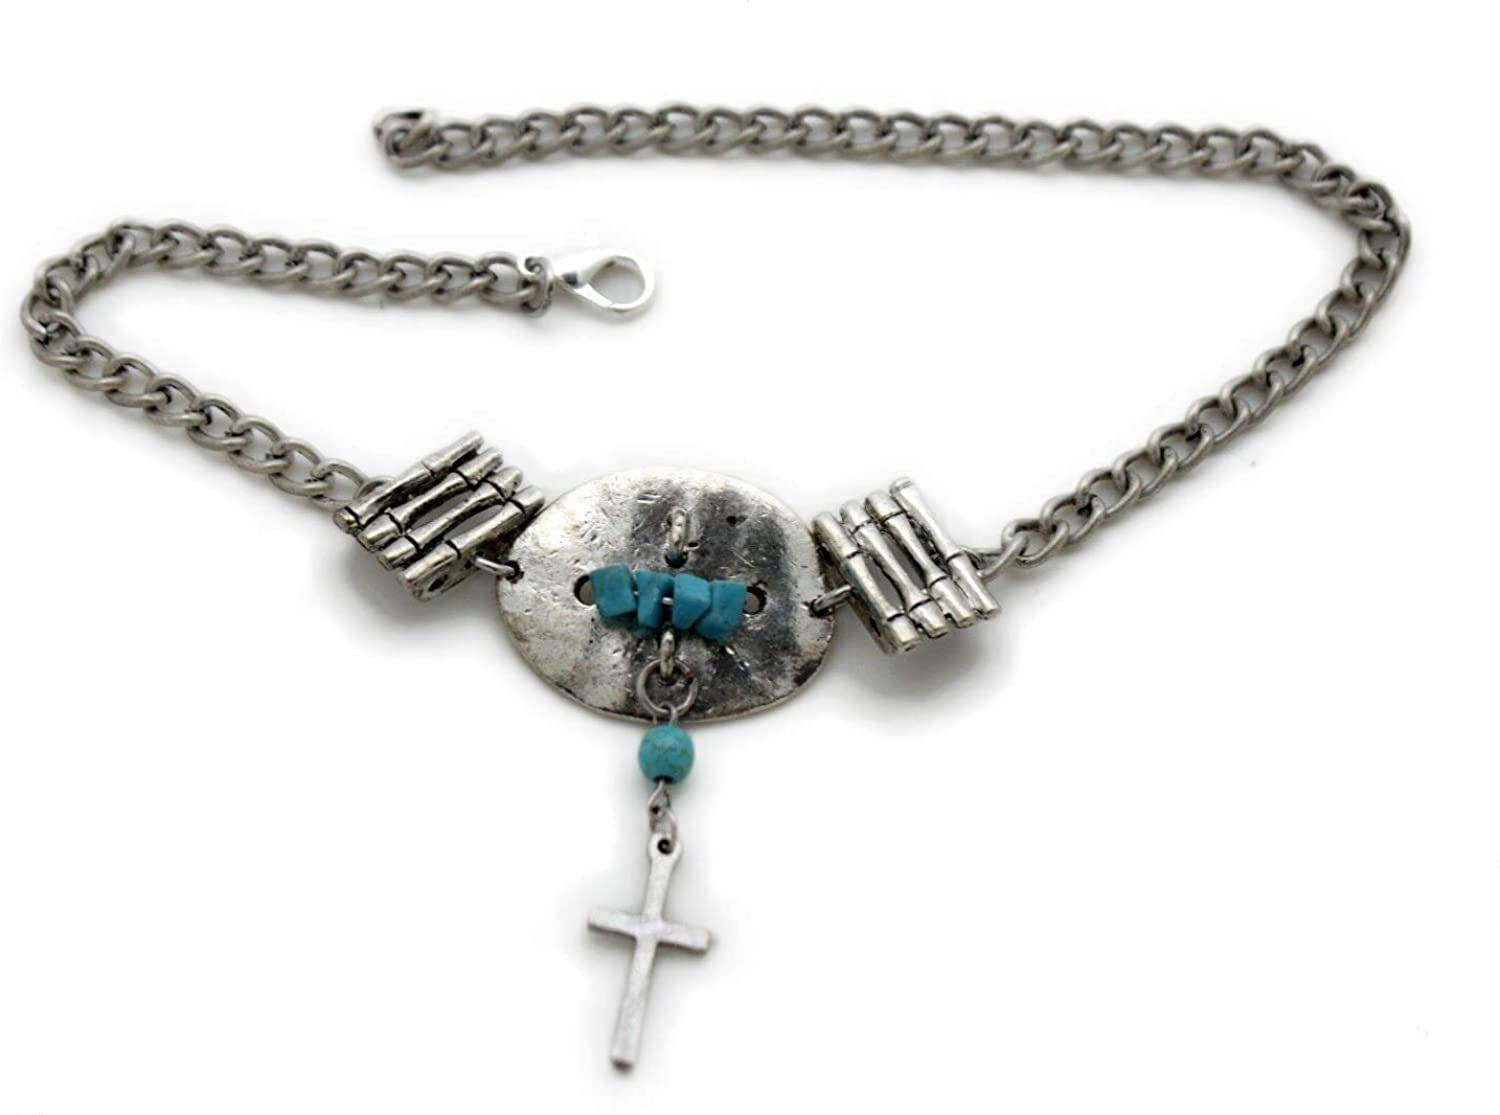 Trendy Fashion Jewelry TFJ Women Western Boot Chains Metal Bling Bracelet Anklet Silver Cross Charm Turquoise Blue Beads